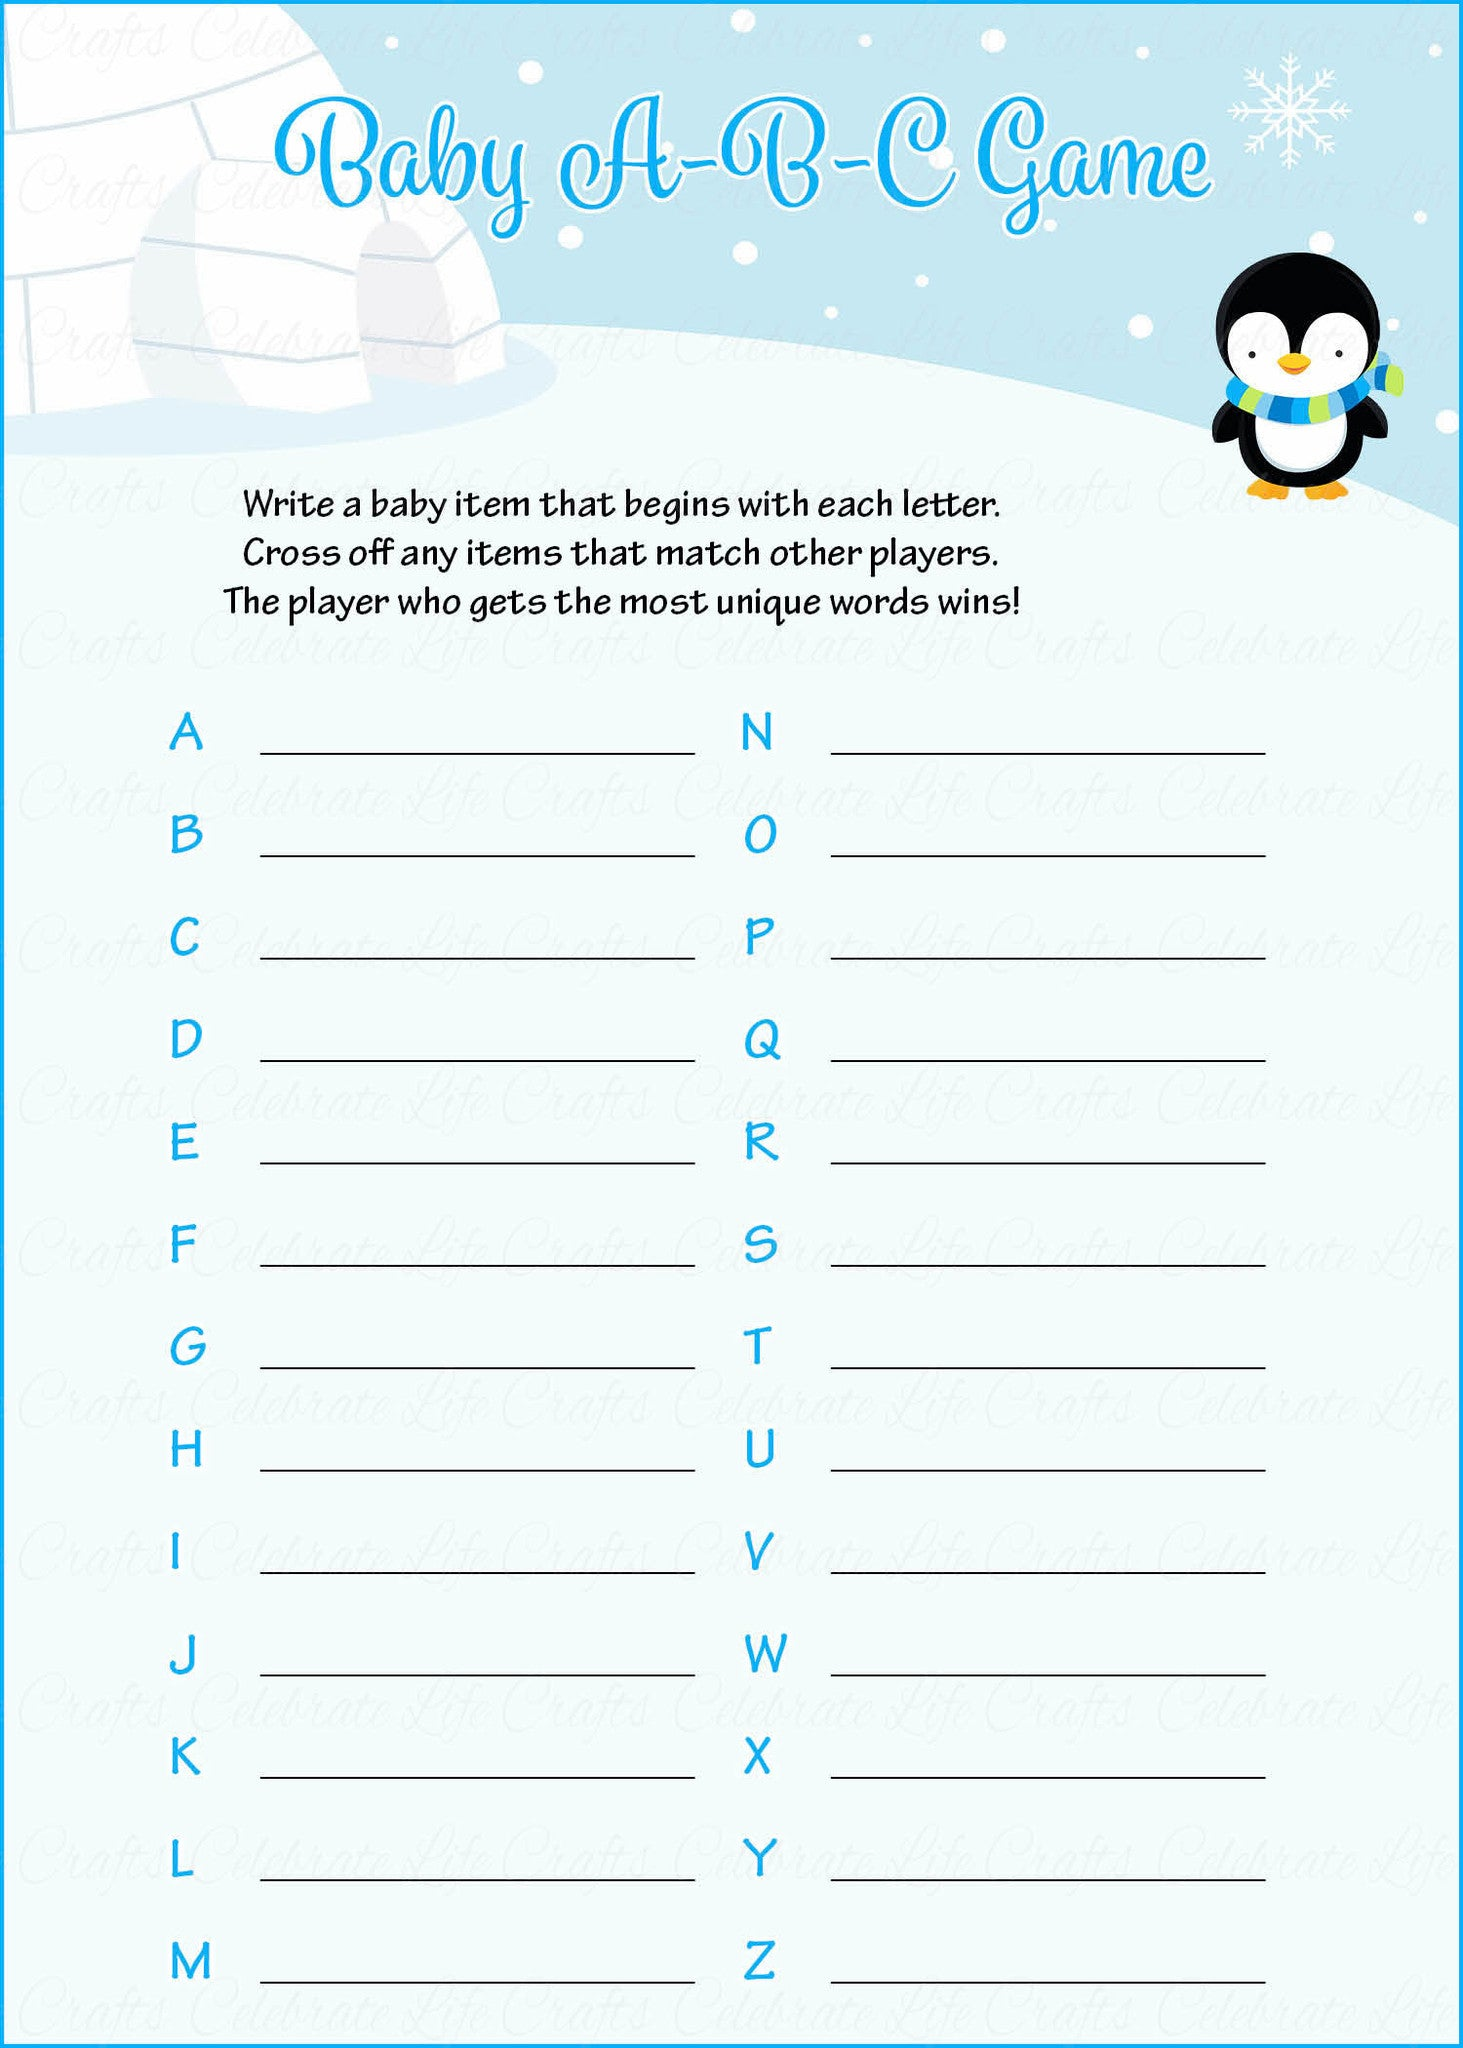 Baby ABCs Baby Shower Game Winter Baby Shower Theme for Baby